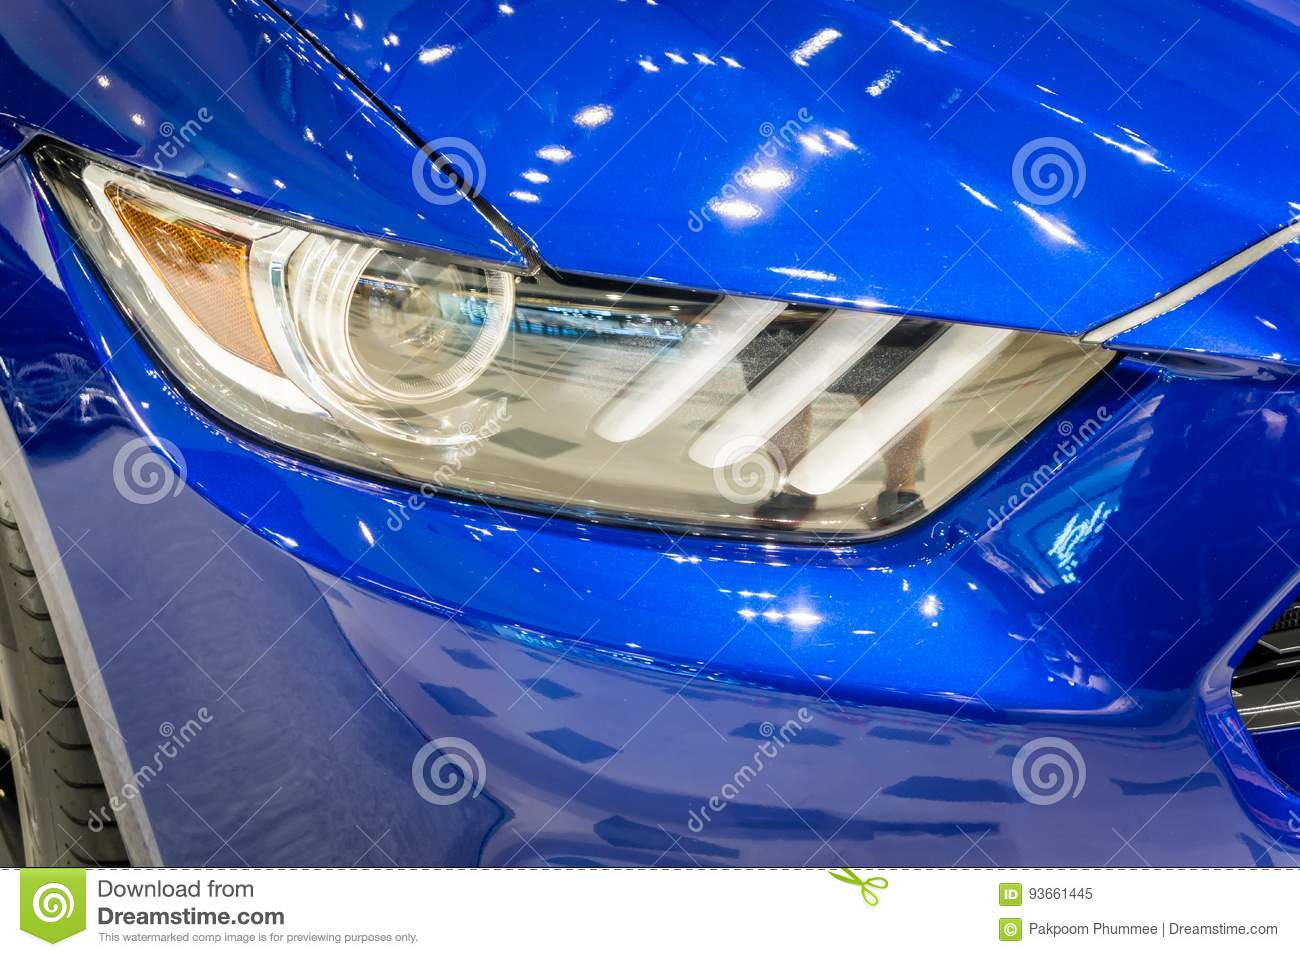 Shot of a modern car headlight